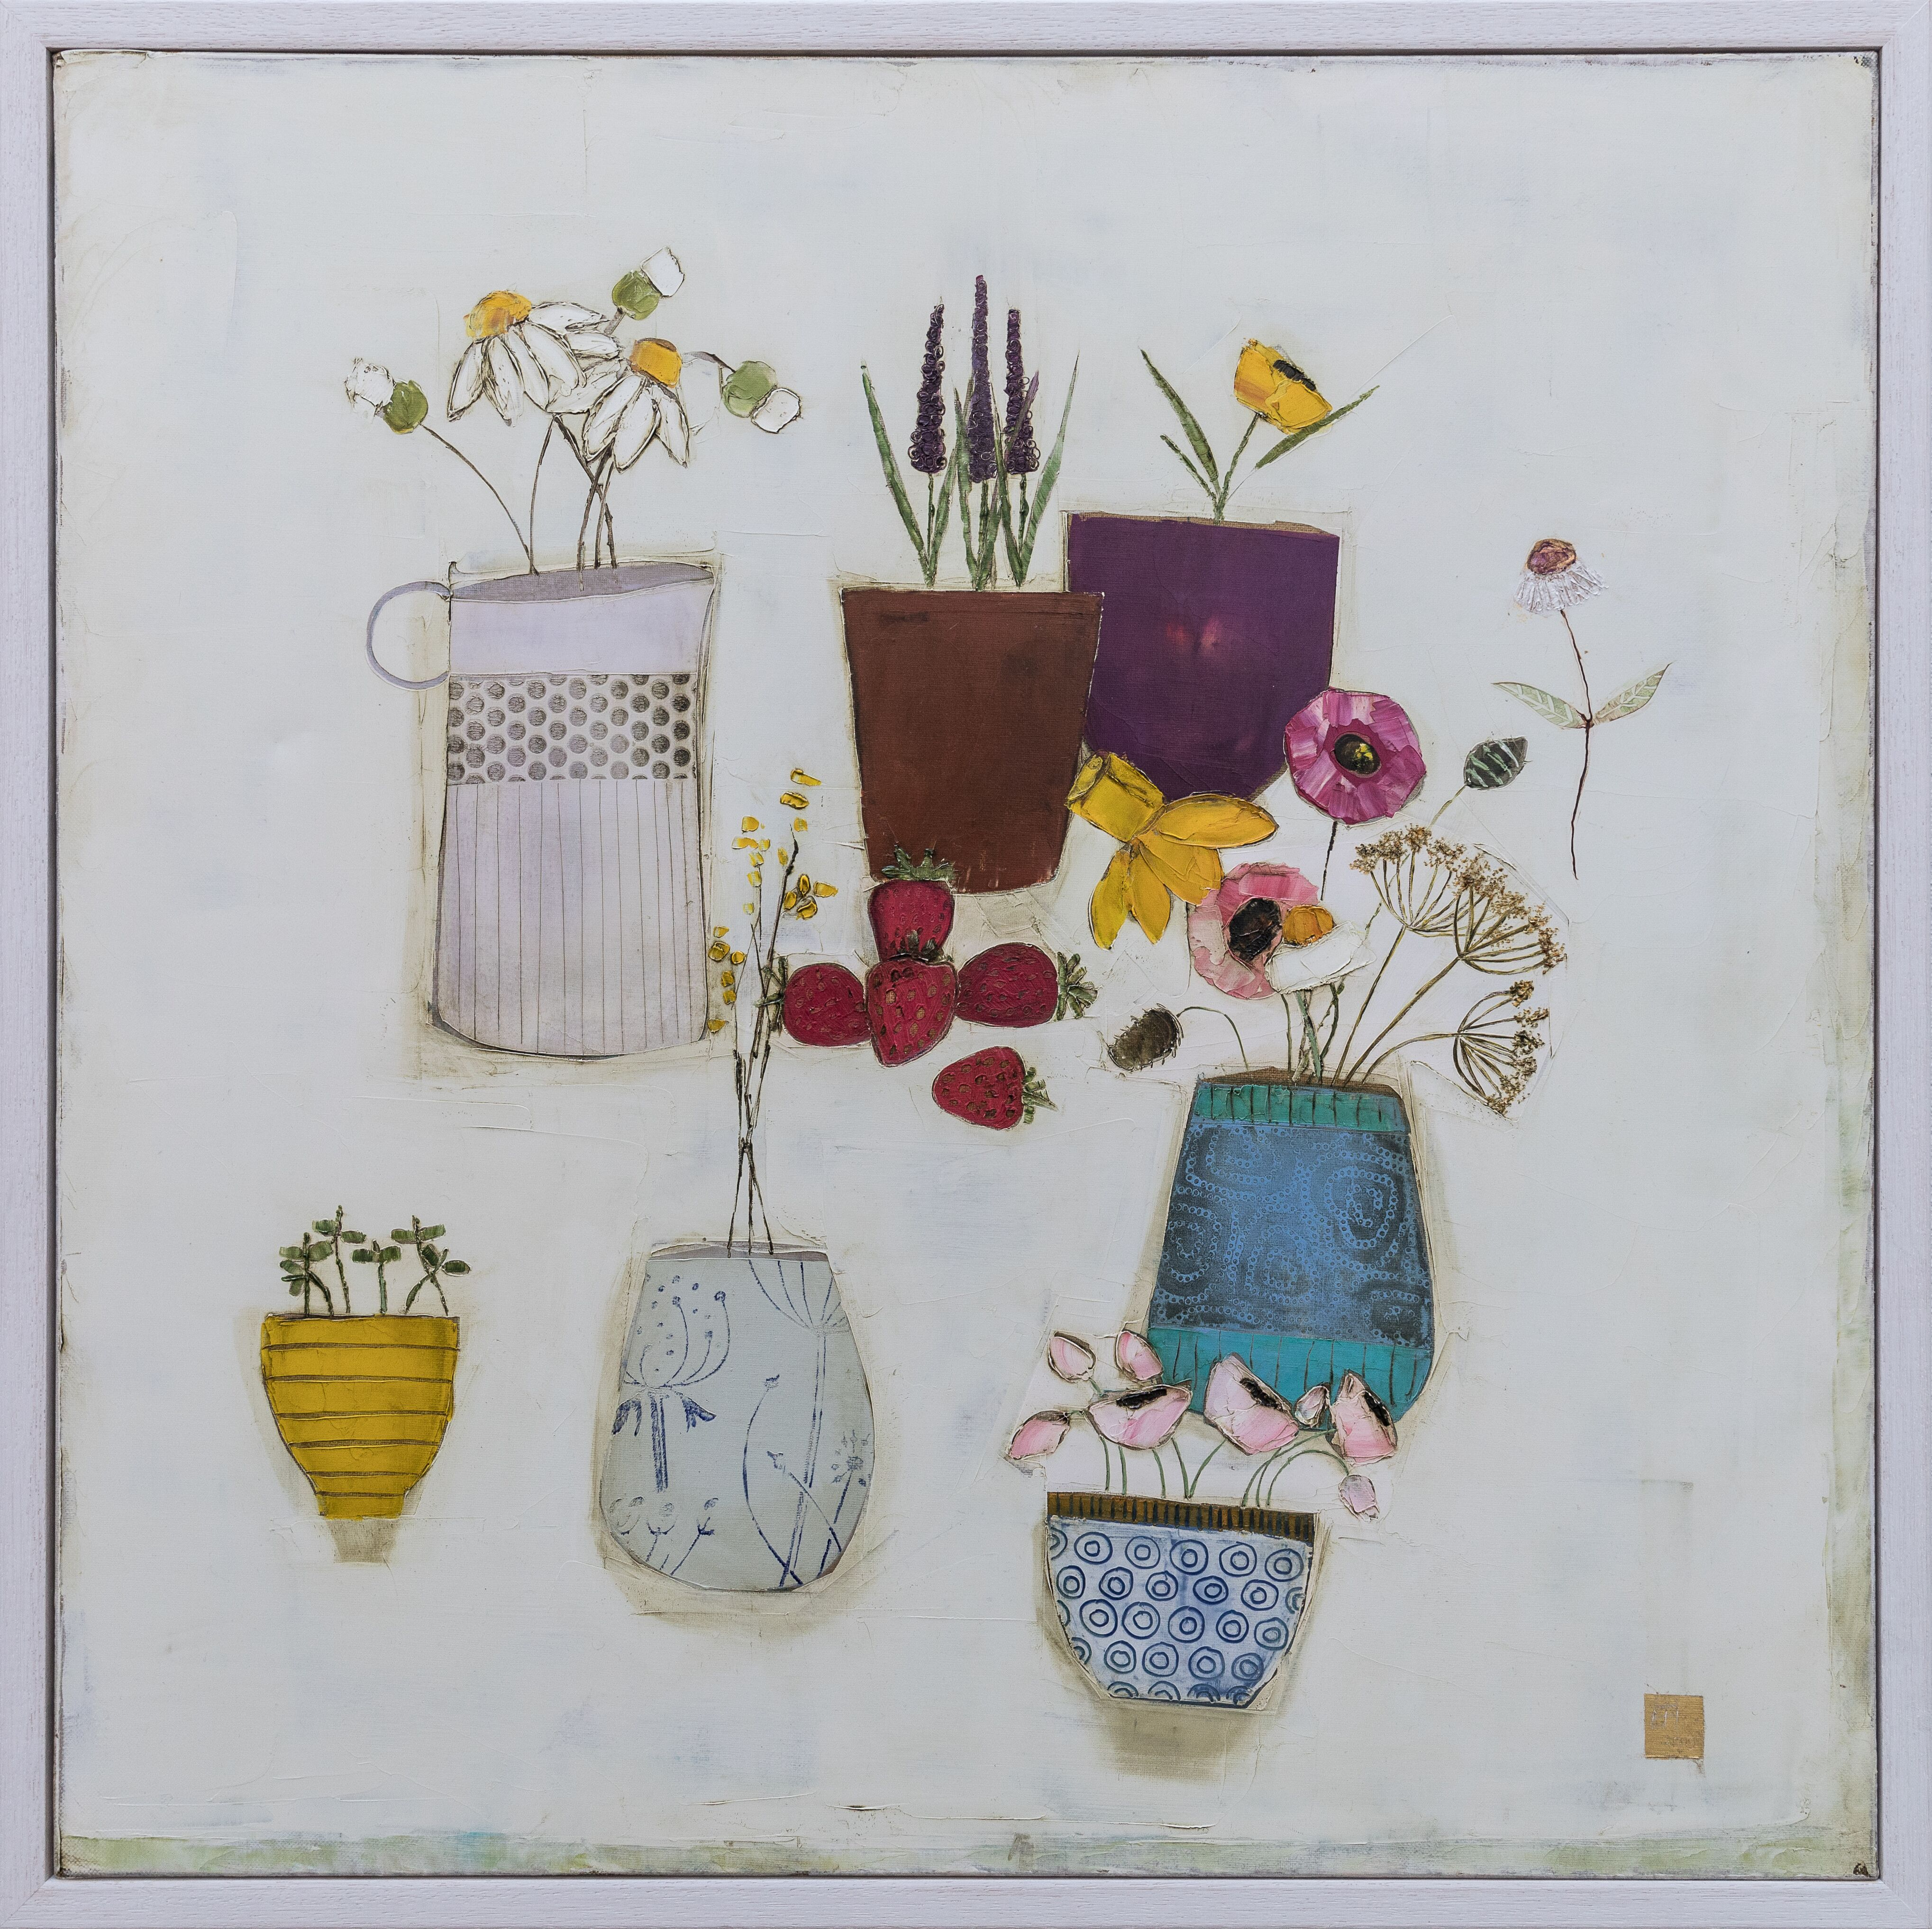 Eithne  Roberts - More garden pickings